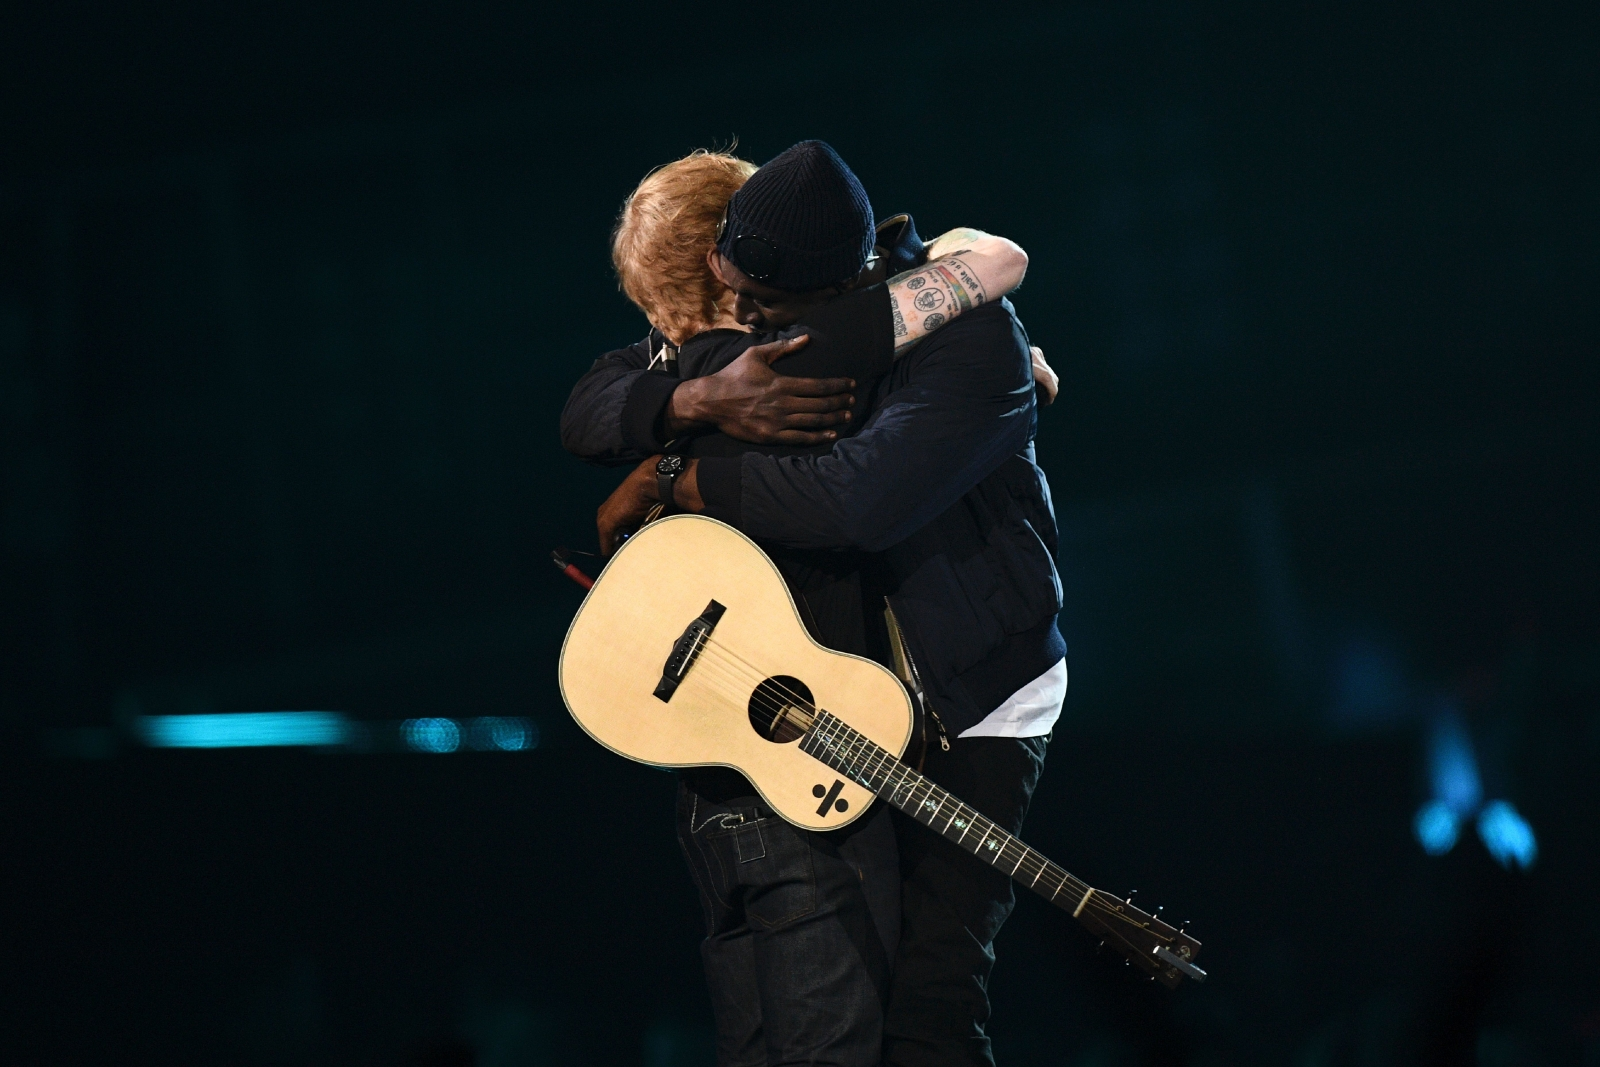 Stormzy and Ed Sheeran